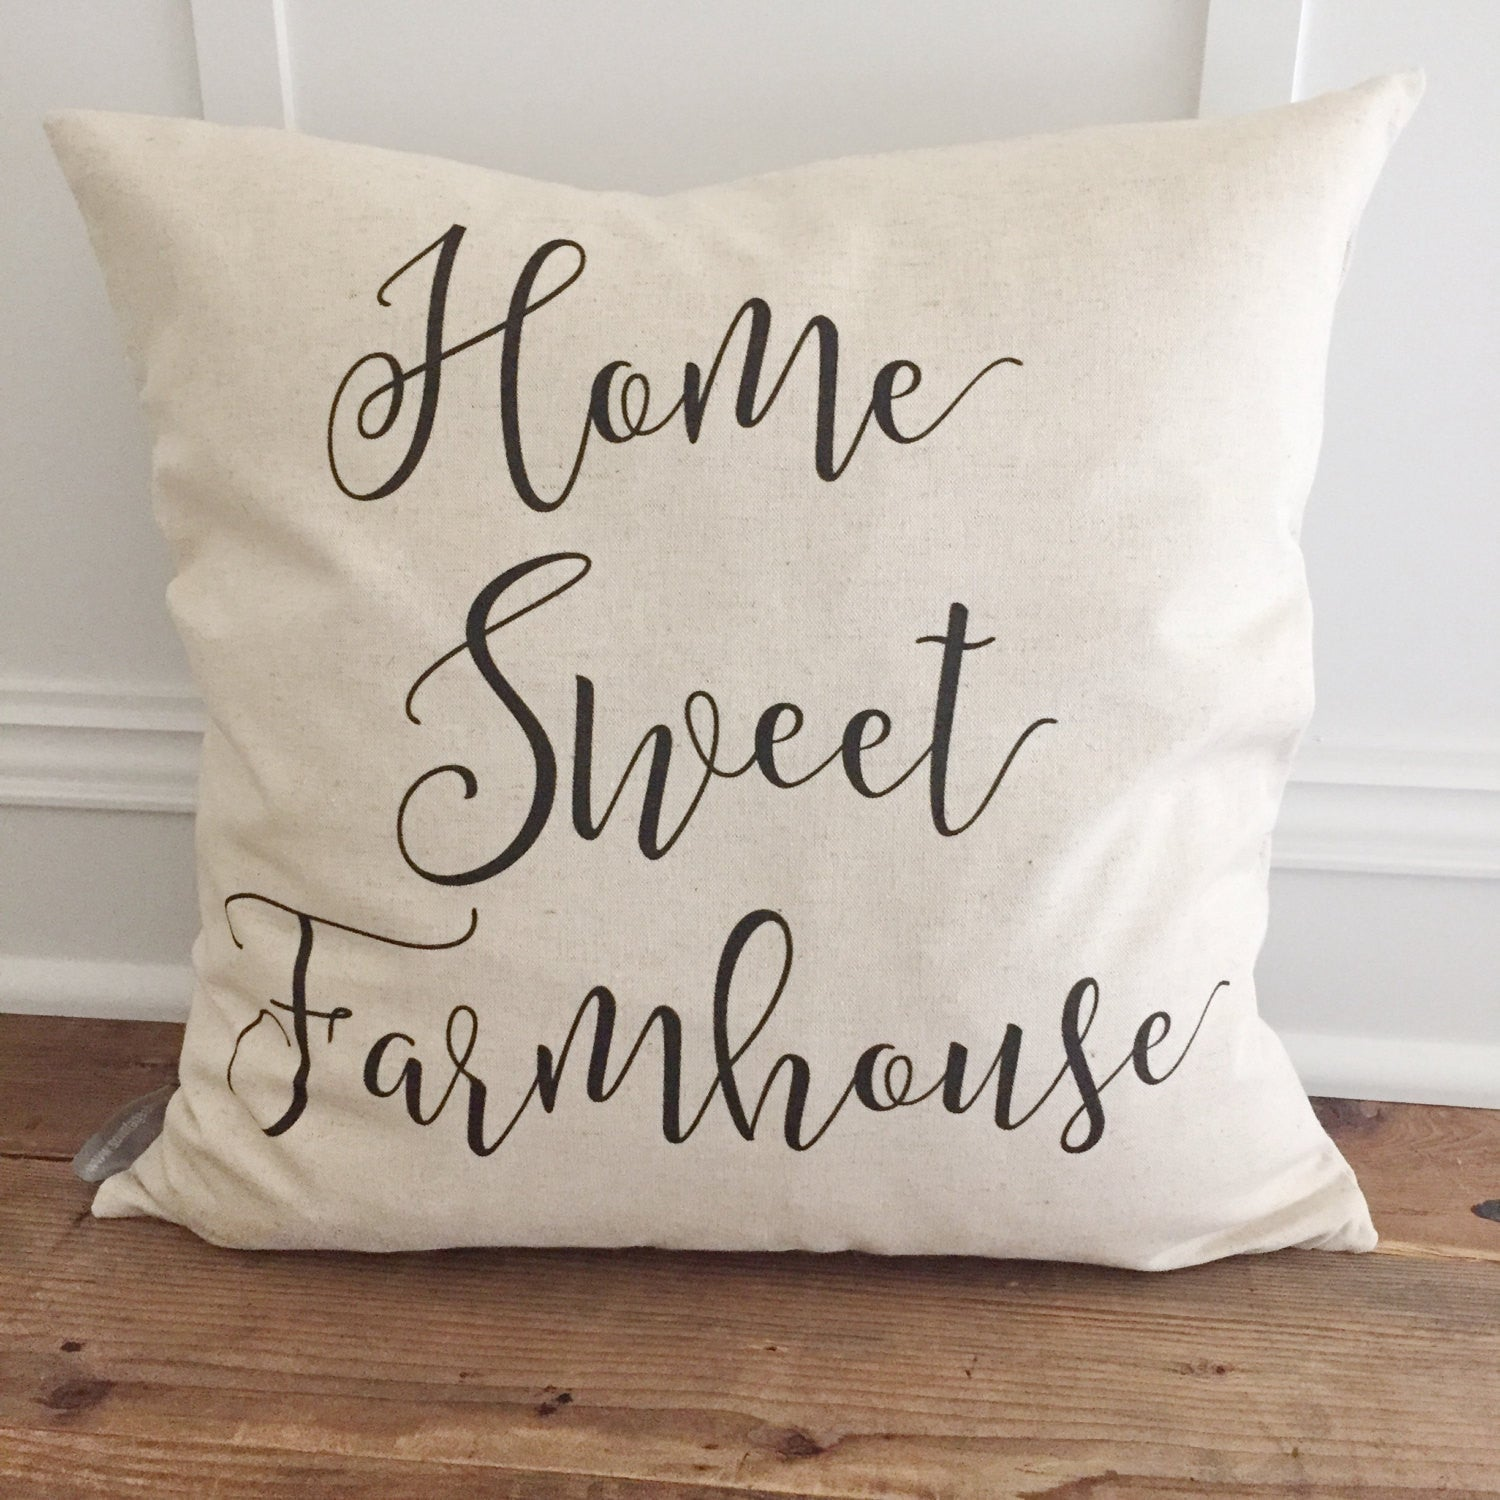 Throw Pillow Covers Farmhouse : Home Sweet Farmhouse Pillow Cover - Linen and Ivory